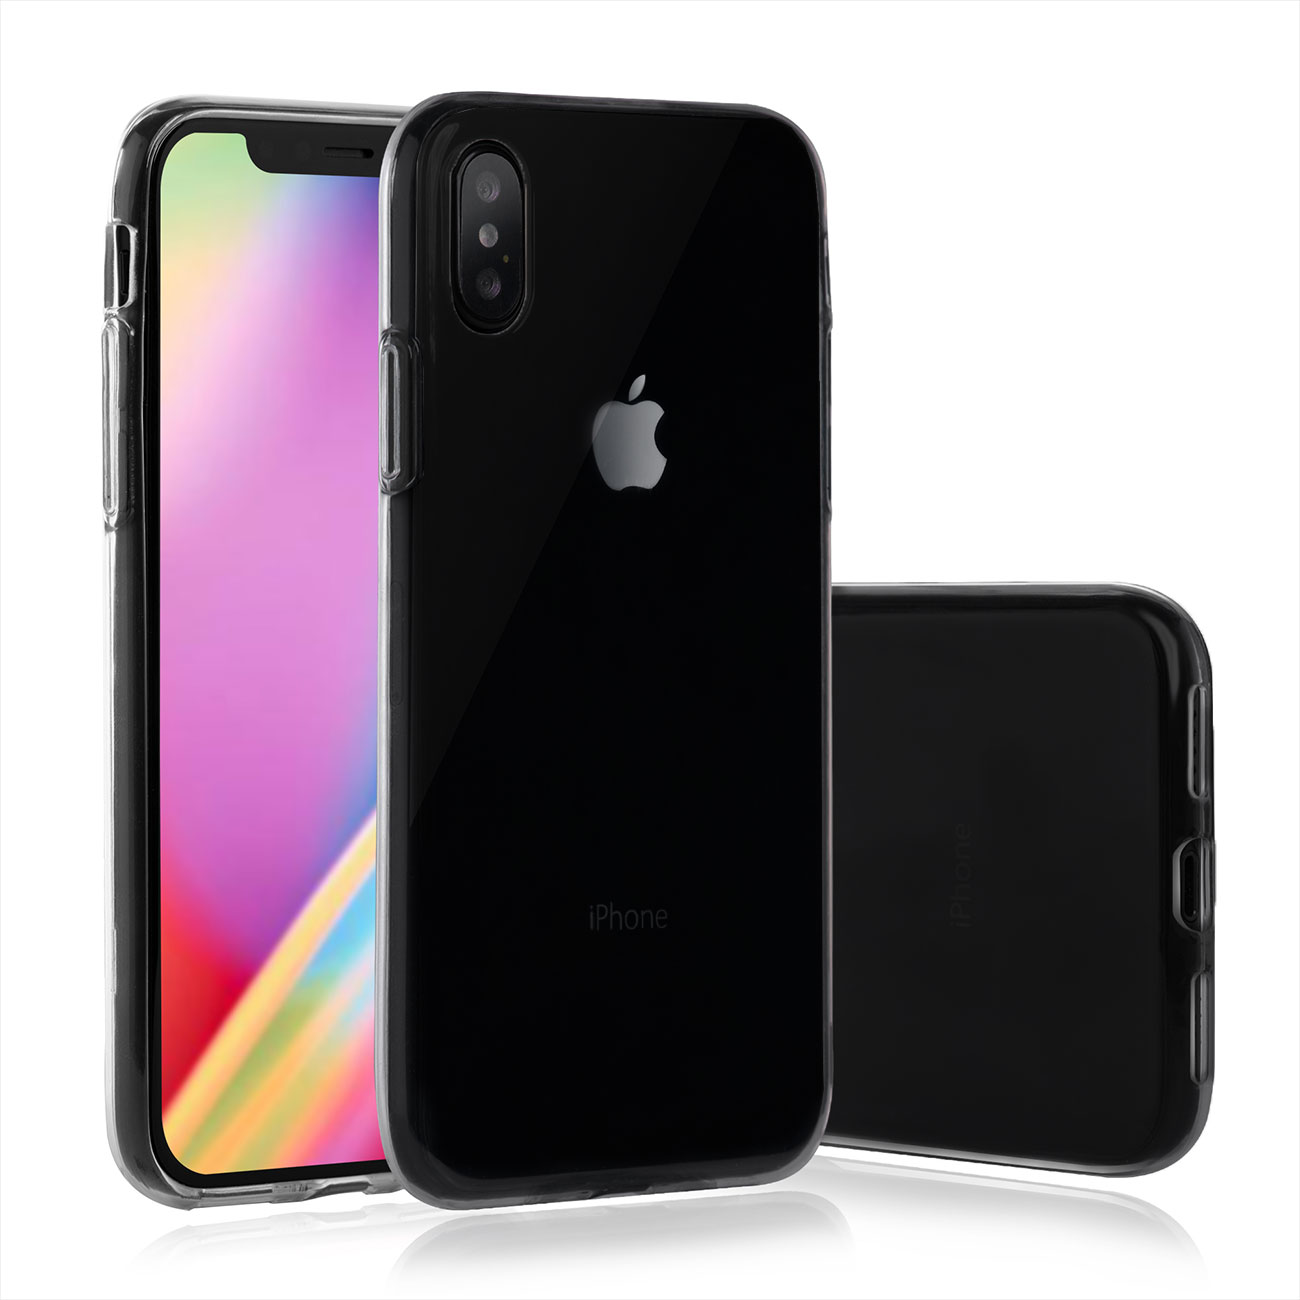 mututec iphone x apple phone case soft tpu transparent clear electronics cell phone accessories. Black Bedroom Furniture Sets. Home Design Ideas